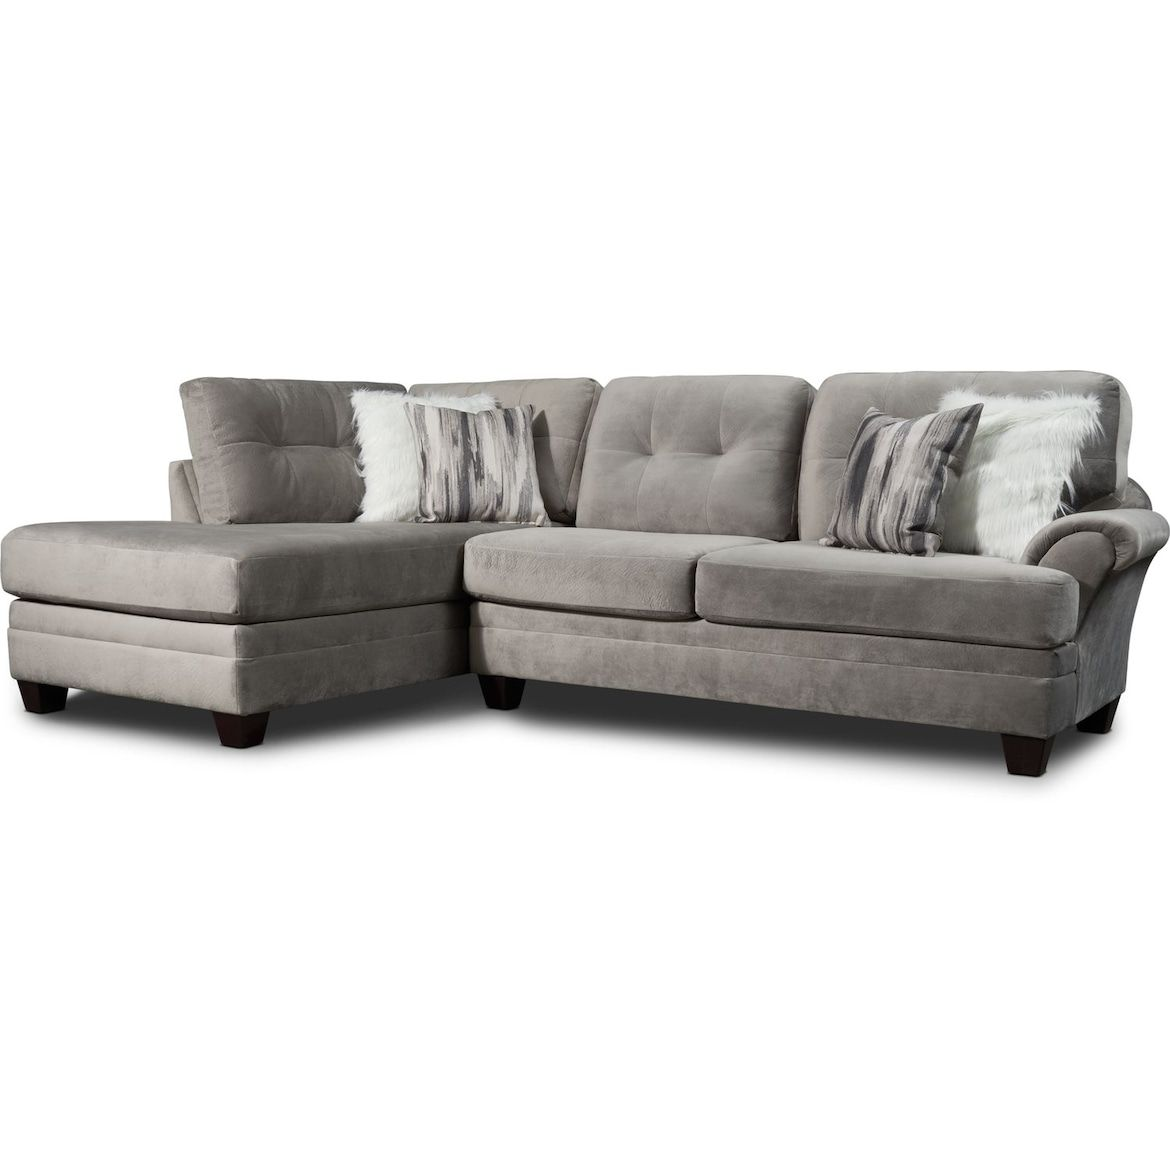 Cordelle 2 Piece Sectional With Chaise And Swivel Chair Set With Faux Fur Pillows American Signature Furni Value City Furniture Sectional Reclining Furniture 2 piece sectional sofa with chaise